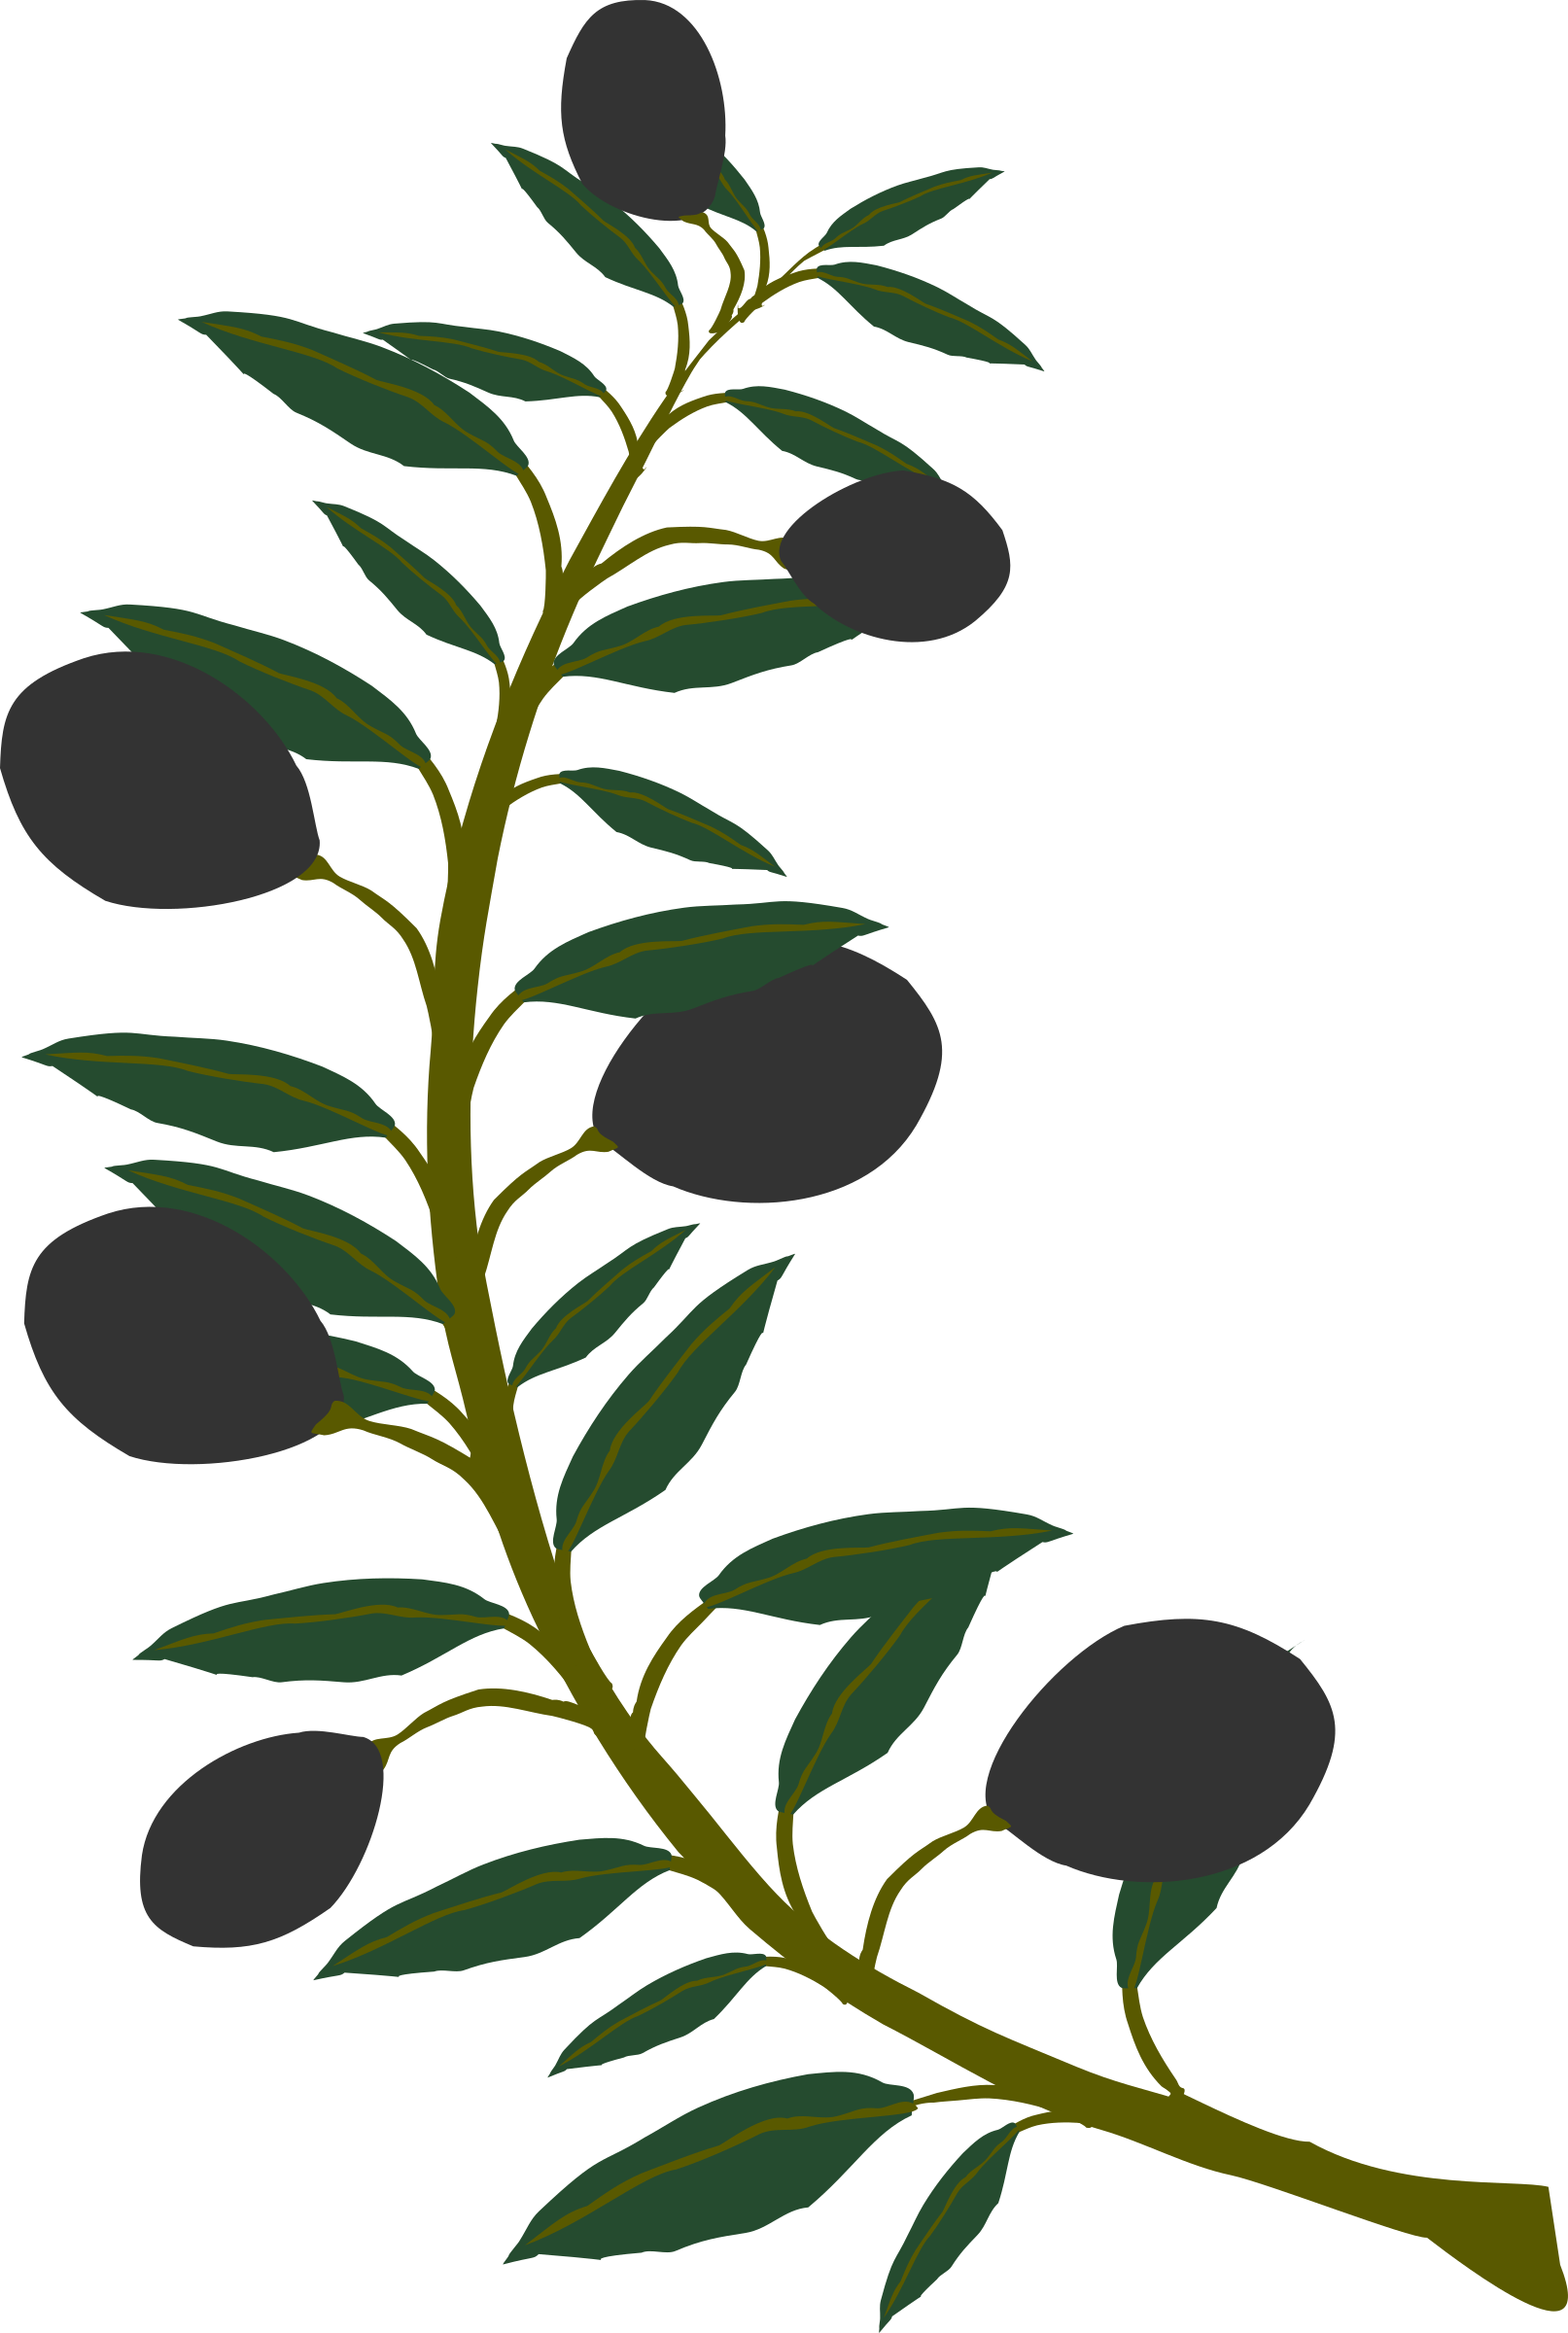 olive branch photo clipart best olive branch clipart vector olive branch clip art round